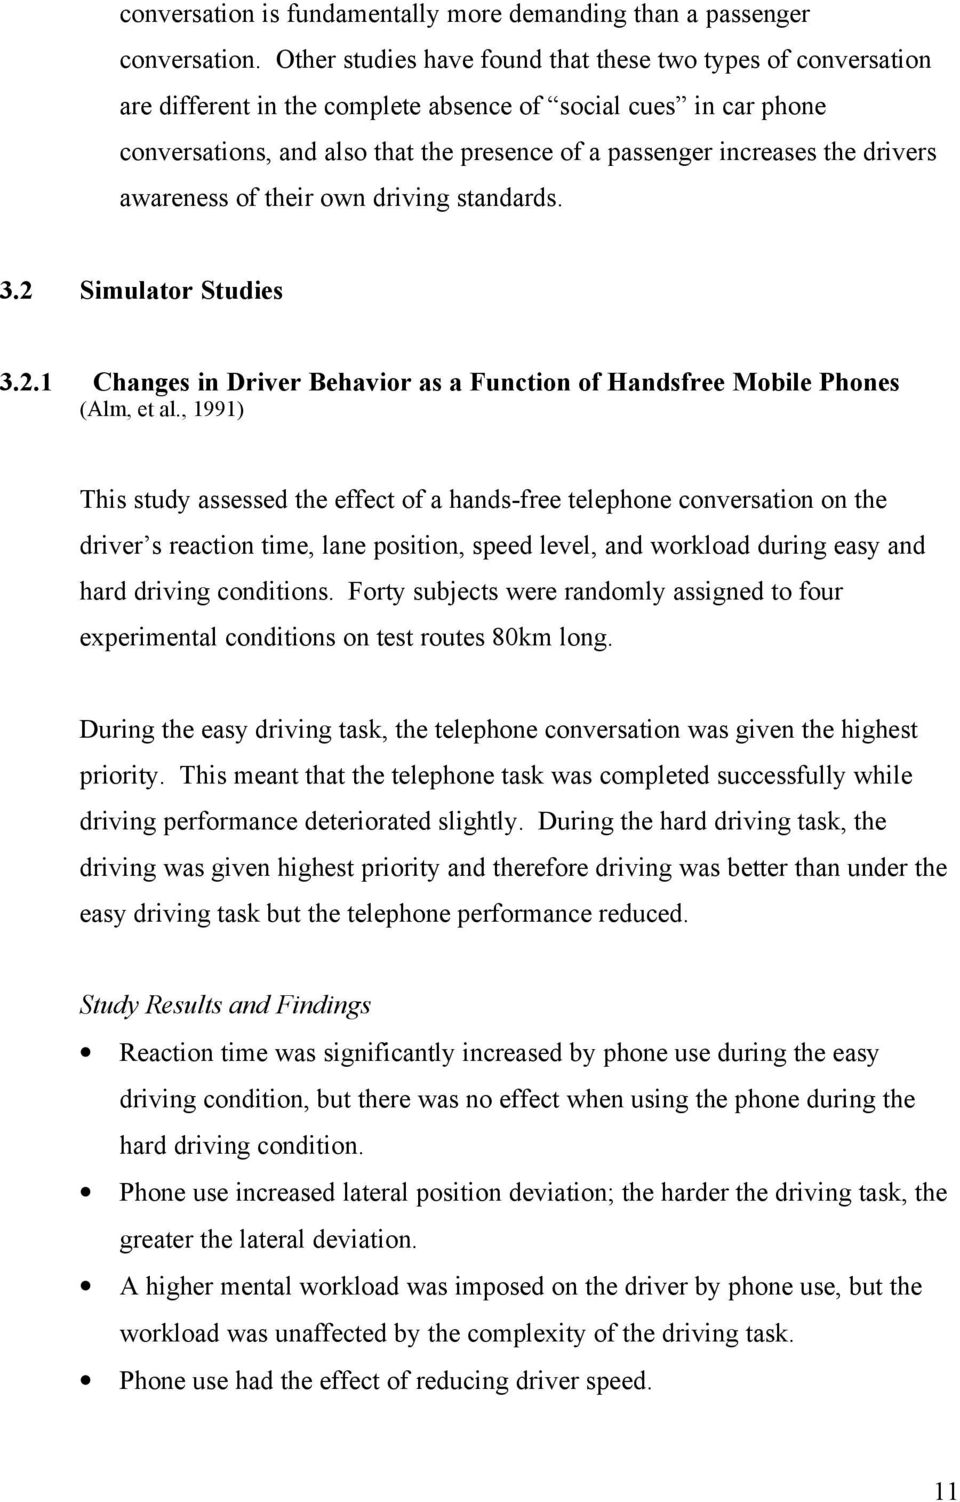 drivers awareness of their own driving standards. 3.2 Simulator Studies 3.2.1 Changes in Driver Behavior as a Function of Handsfree Mobile Phones (Alm, et al.